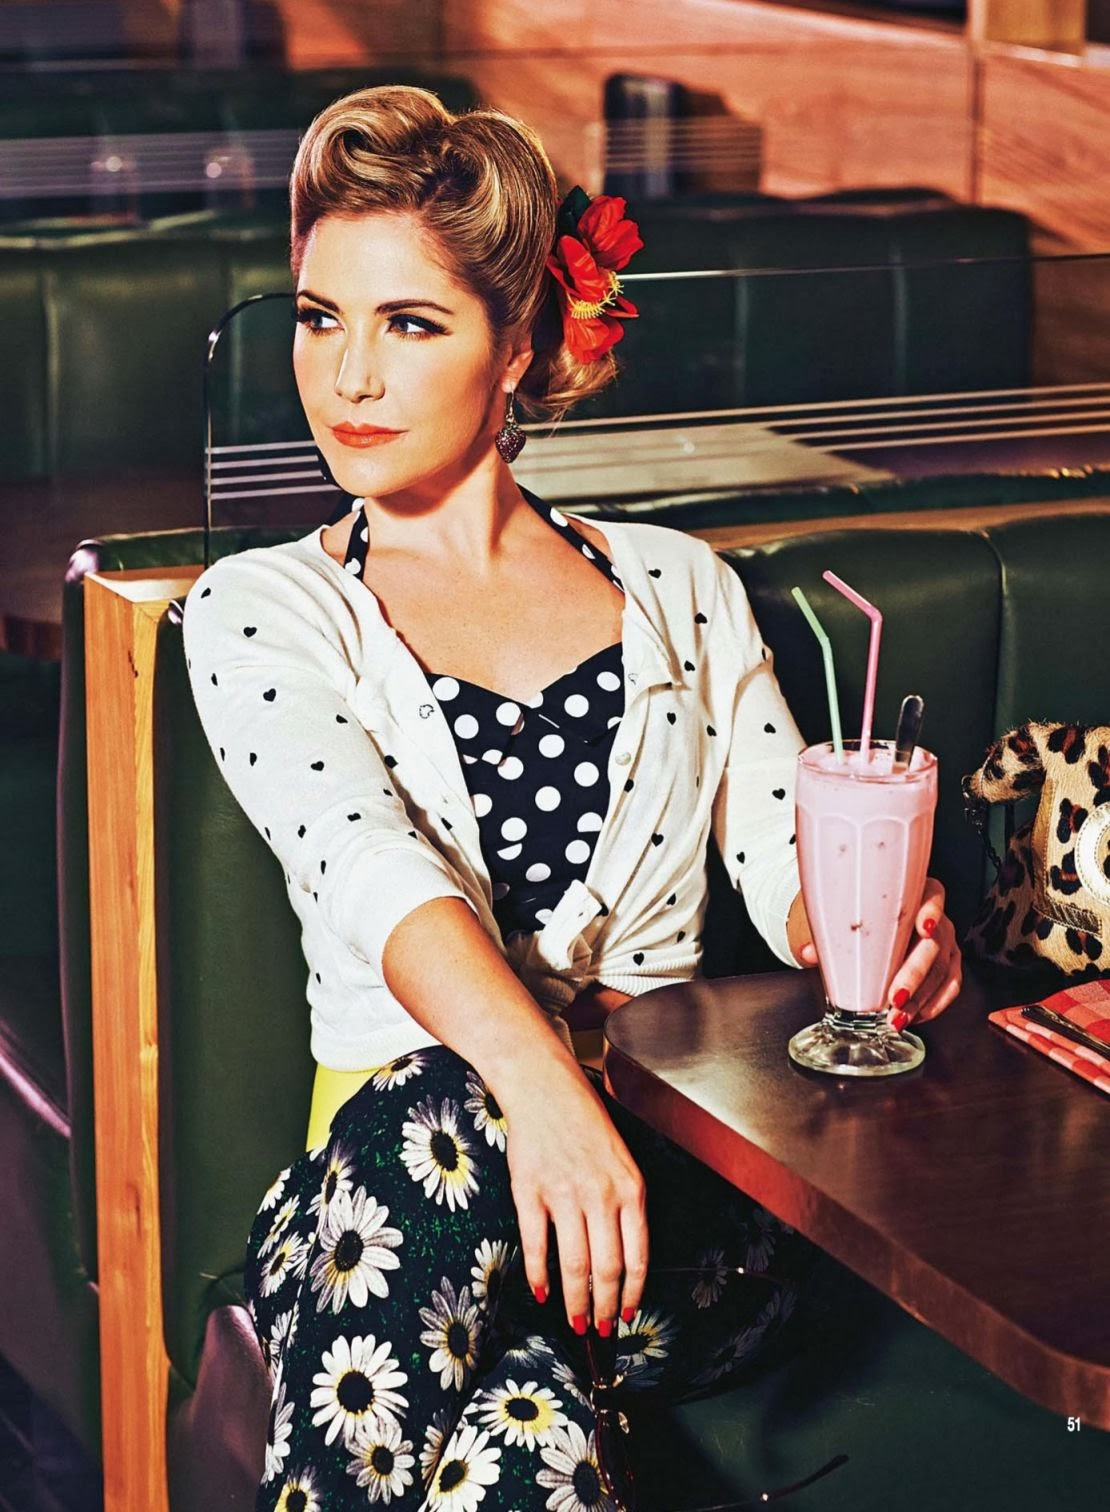 Heidi Range HQ Pictures Hello UK Magazine Photoshoot February 2014